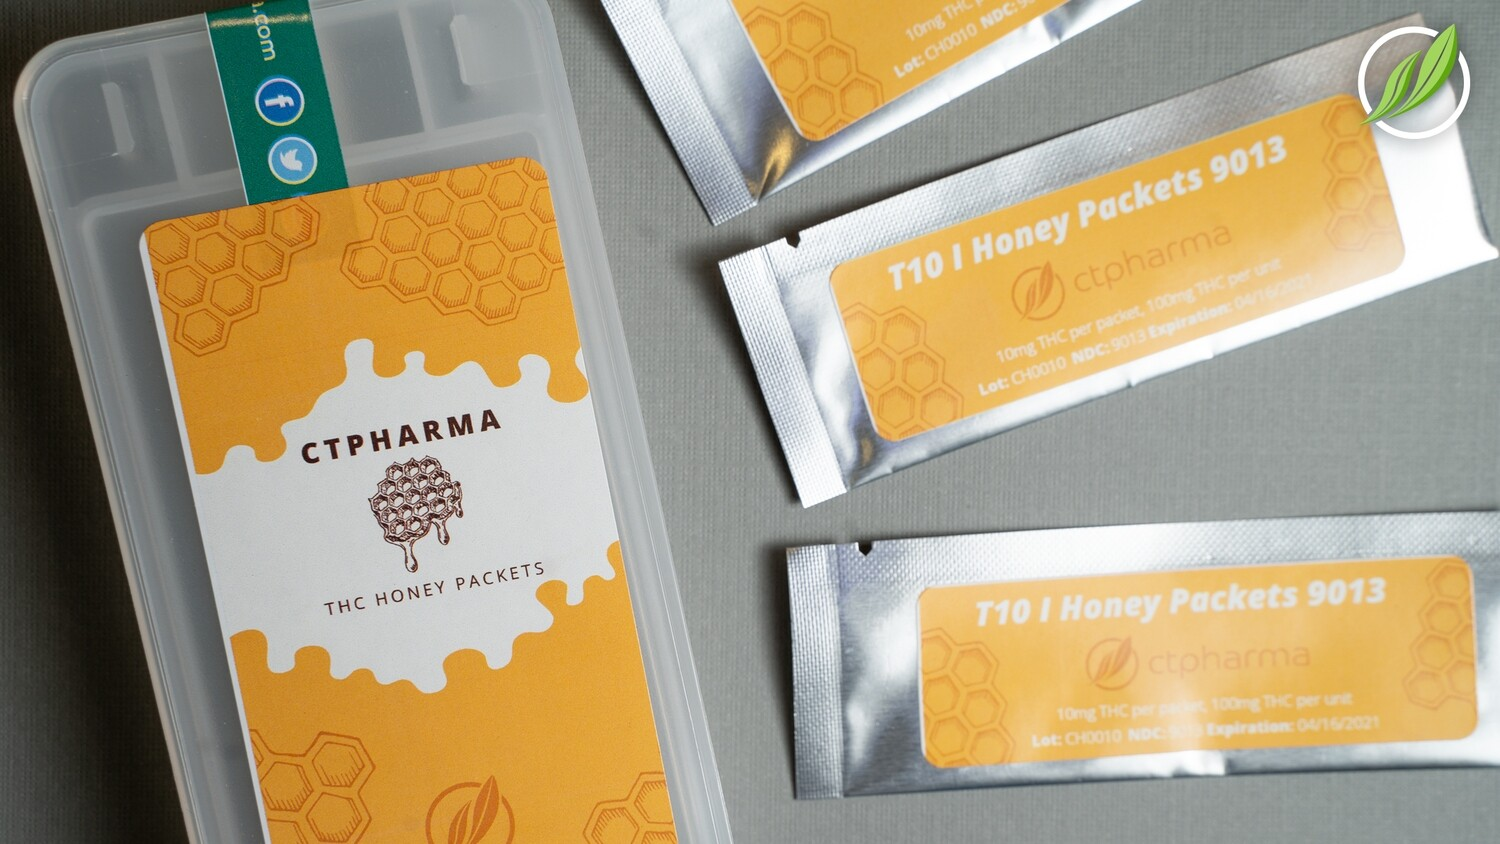 T10 I Honey Packets 9013 (10 Packets)(CPS)